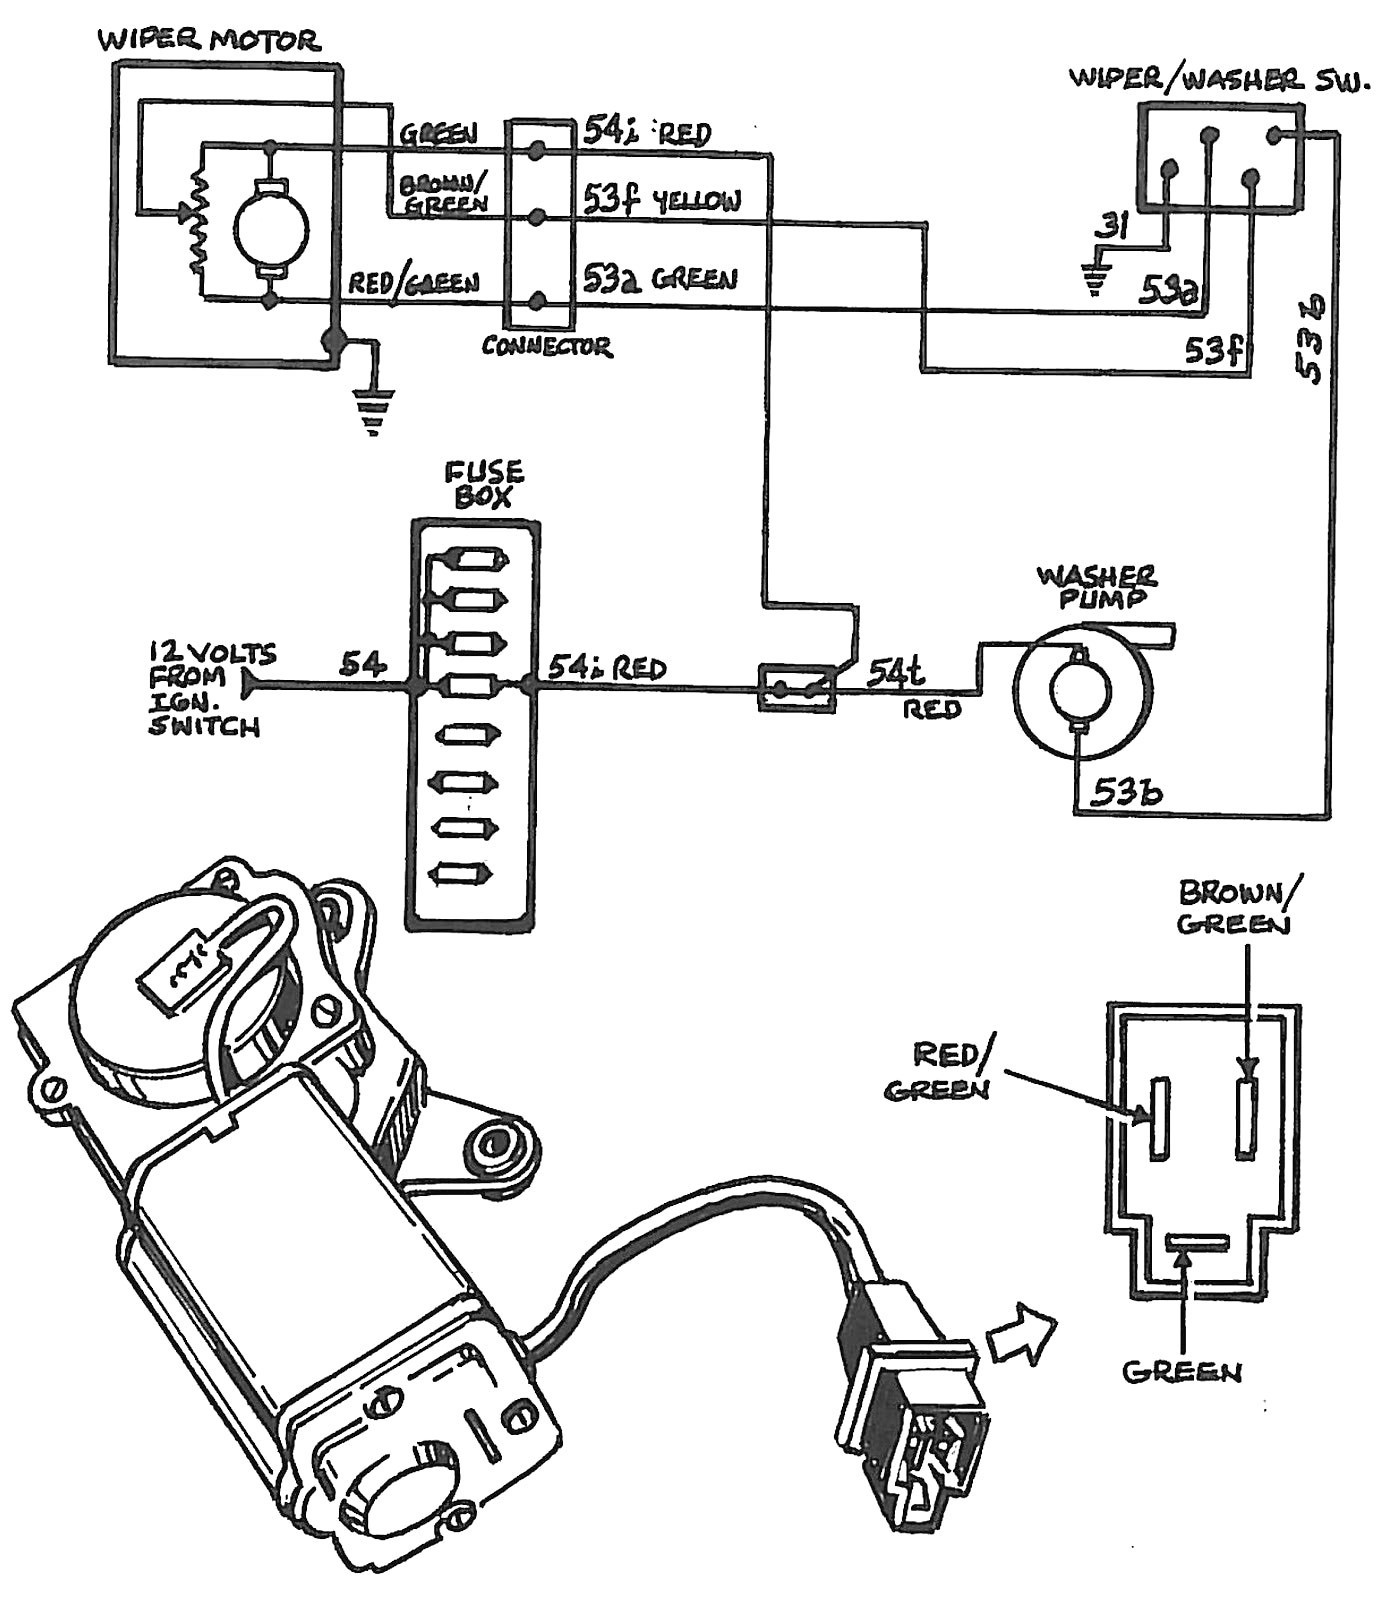 Windshield Wiper Motor Wiring Diagram New Afi Windshield Wiper Motor Wiring Diagram Impremedia Ideas with